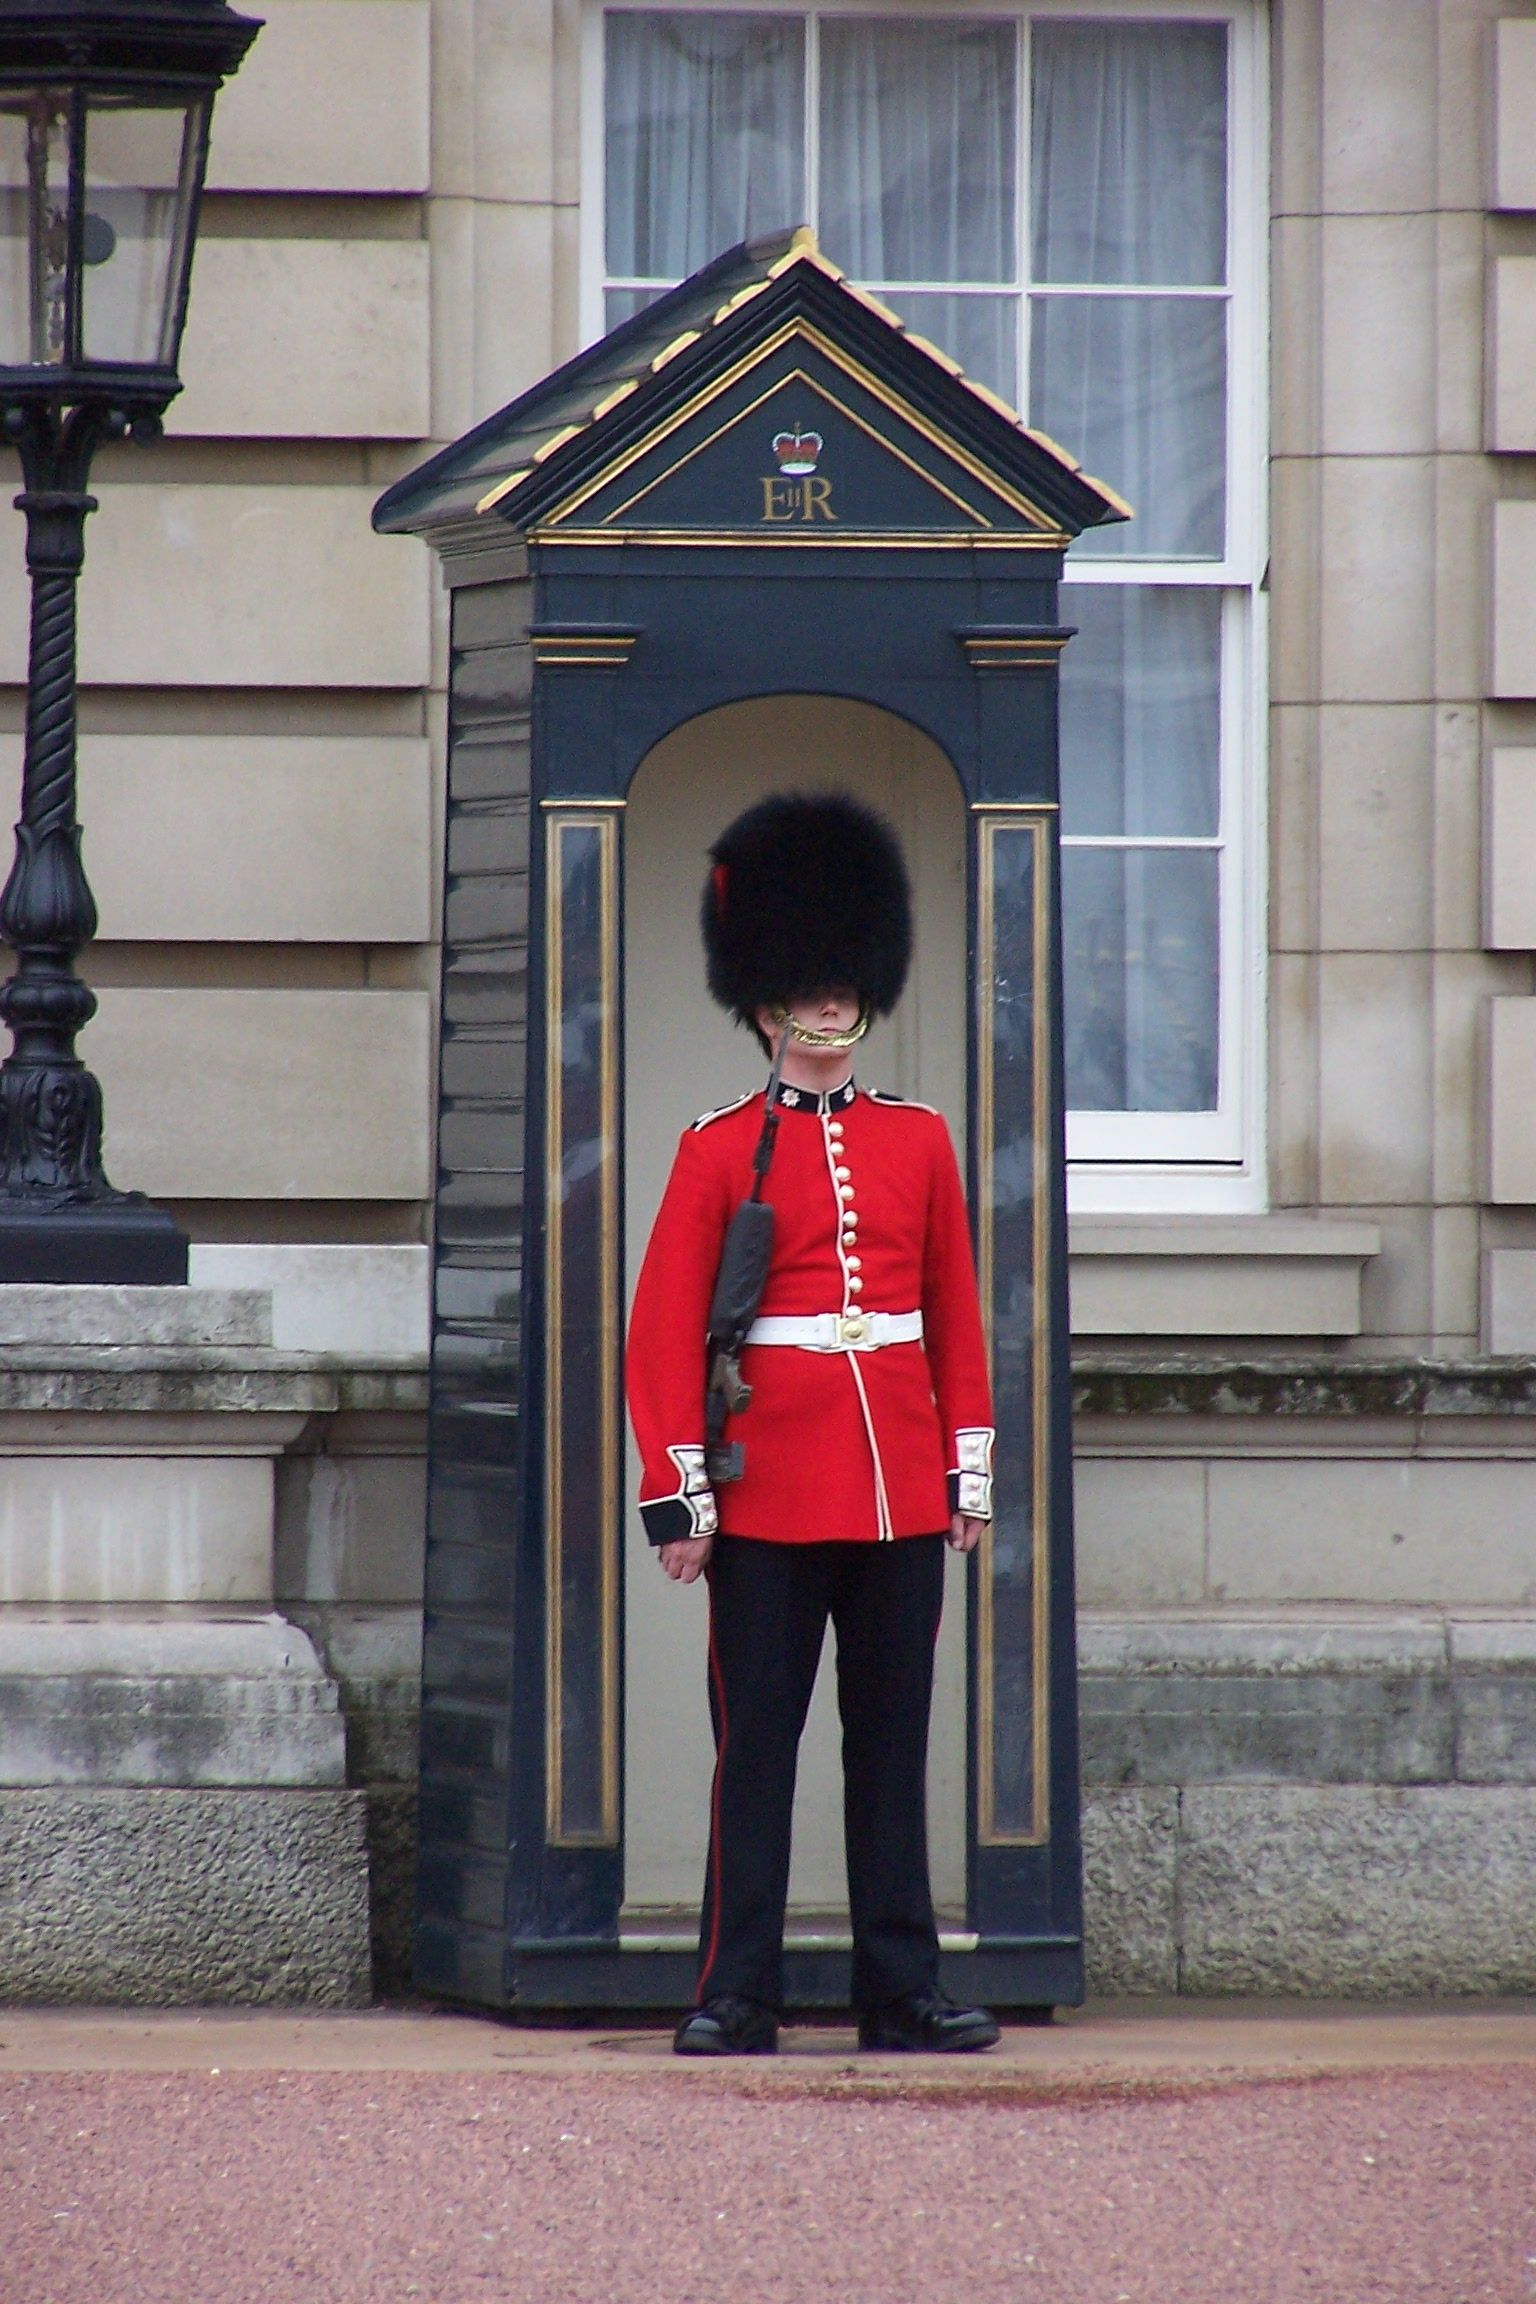 Take a Picture with a Royal Guard in London | Britain ...